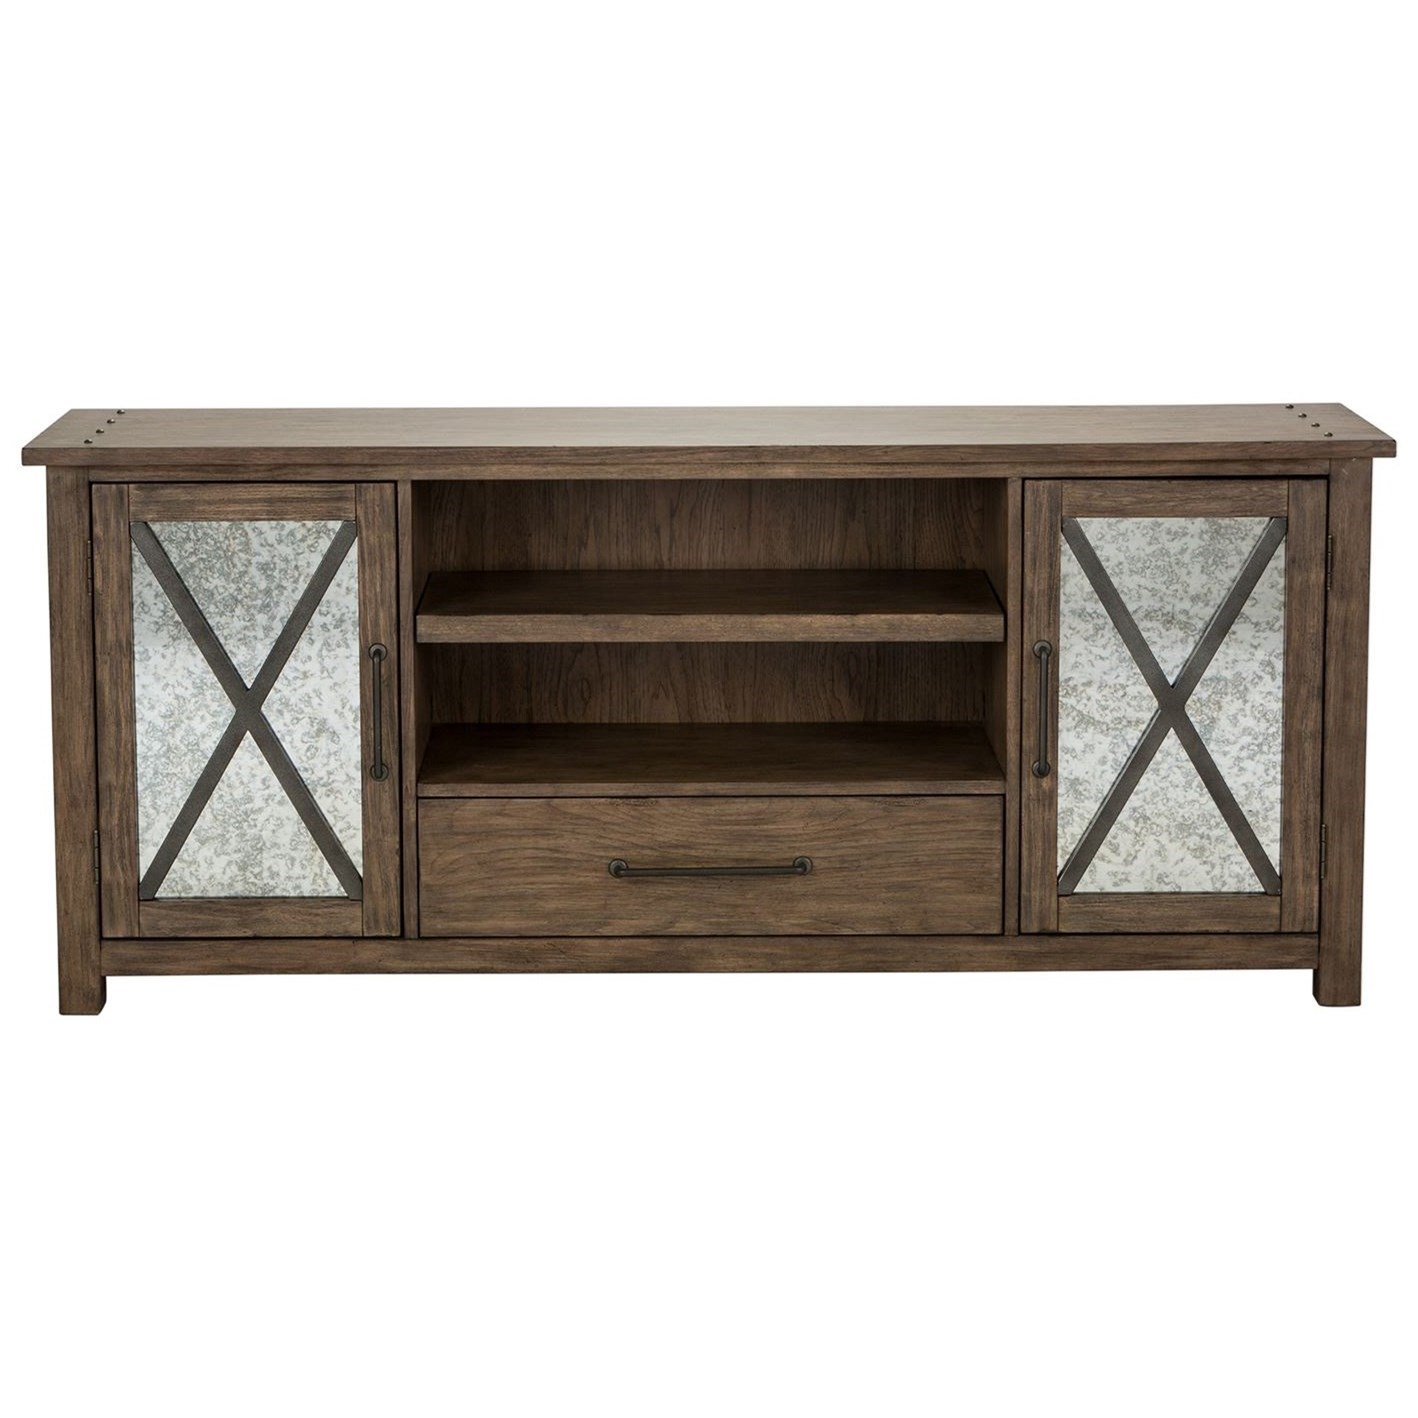 Sonoma Road Contemporary TV Stand With Mirrored Doors By Liberty Furniture